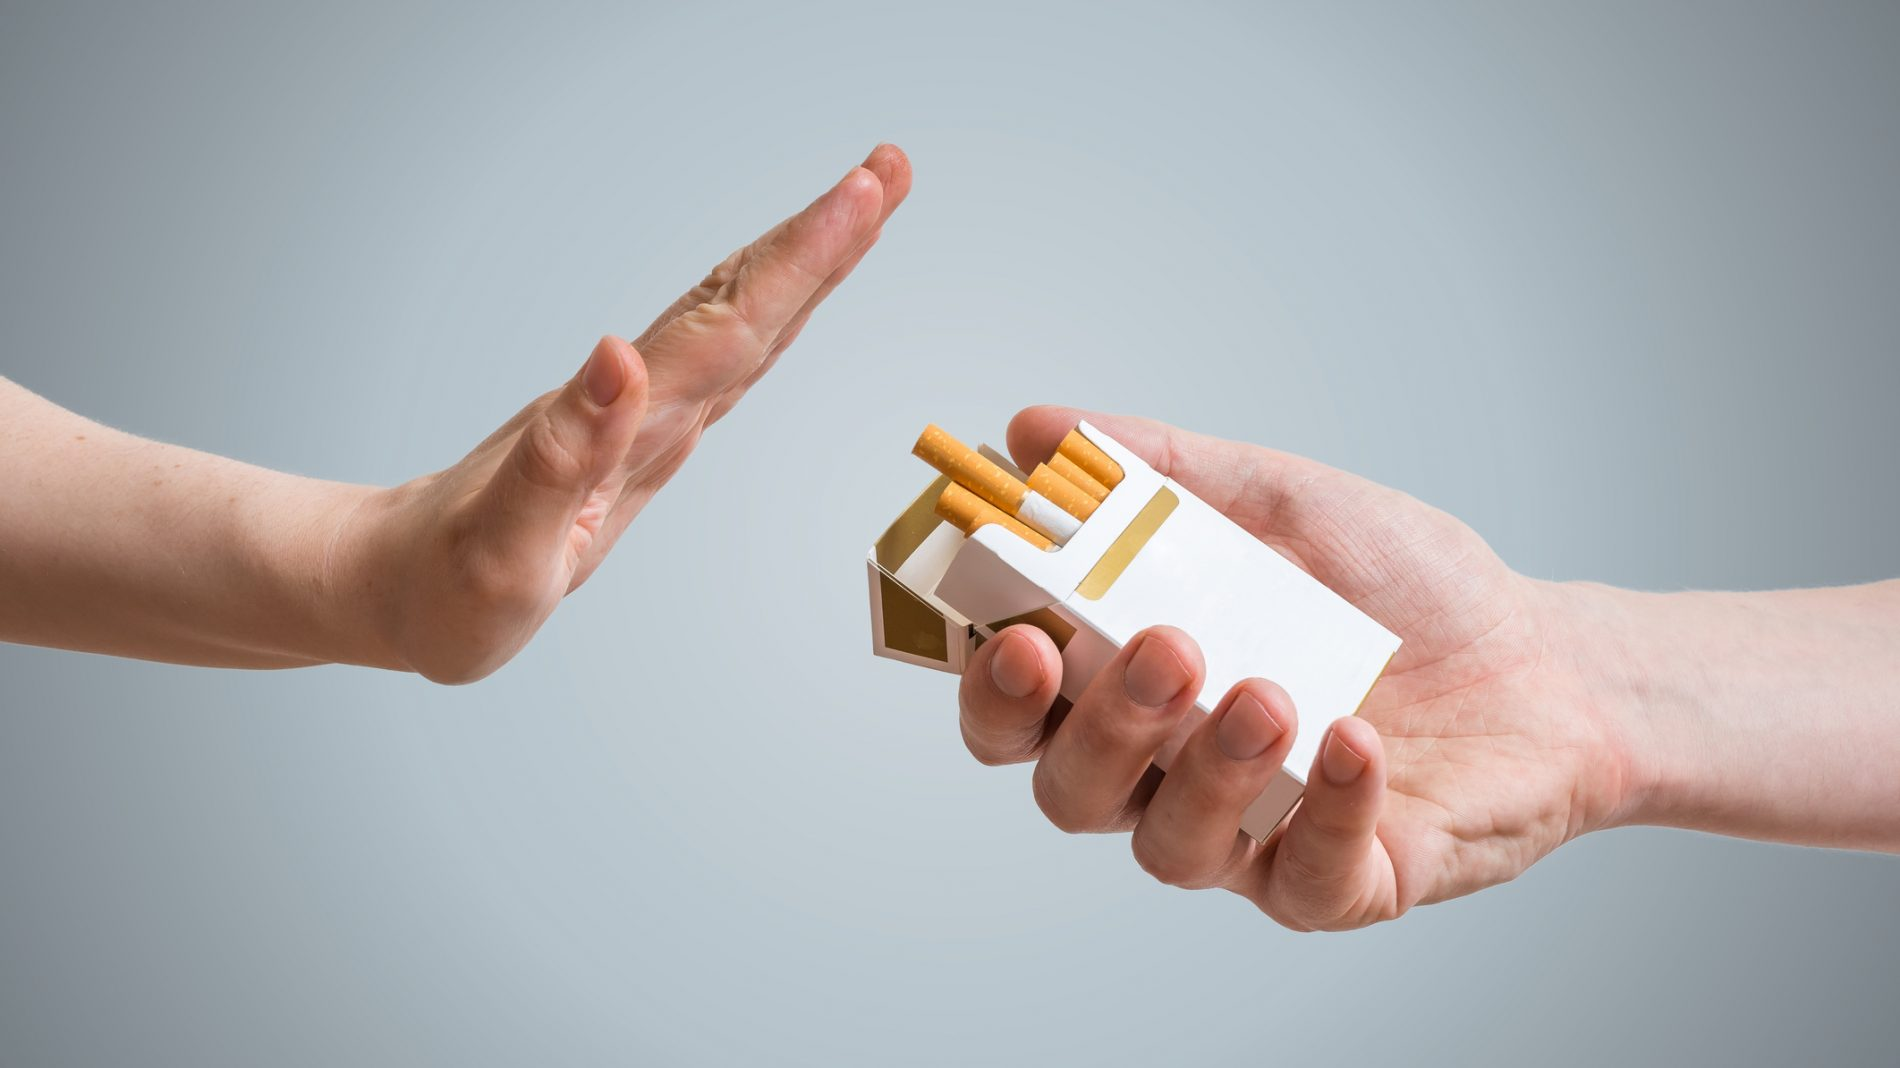 A packet of cigarettes and a hand pushing them away